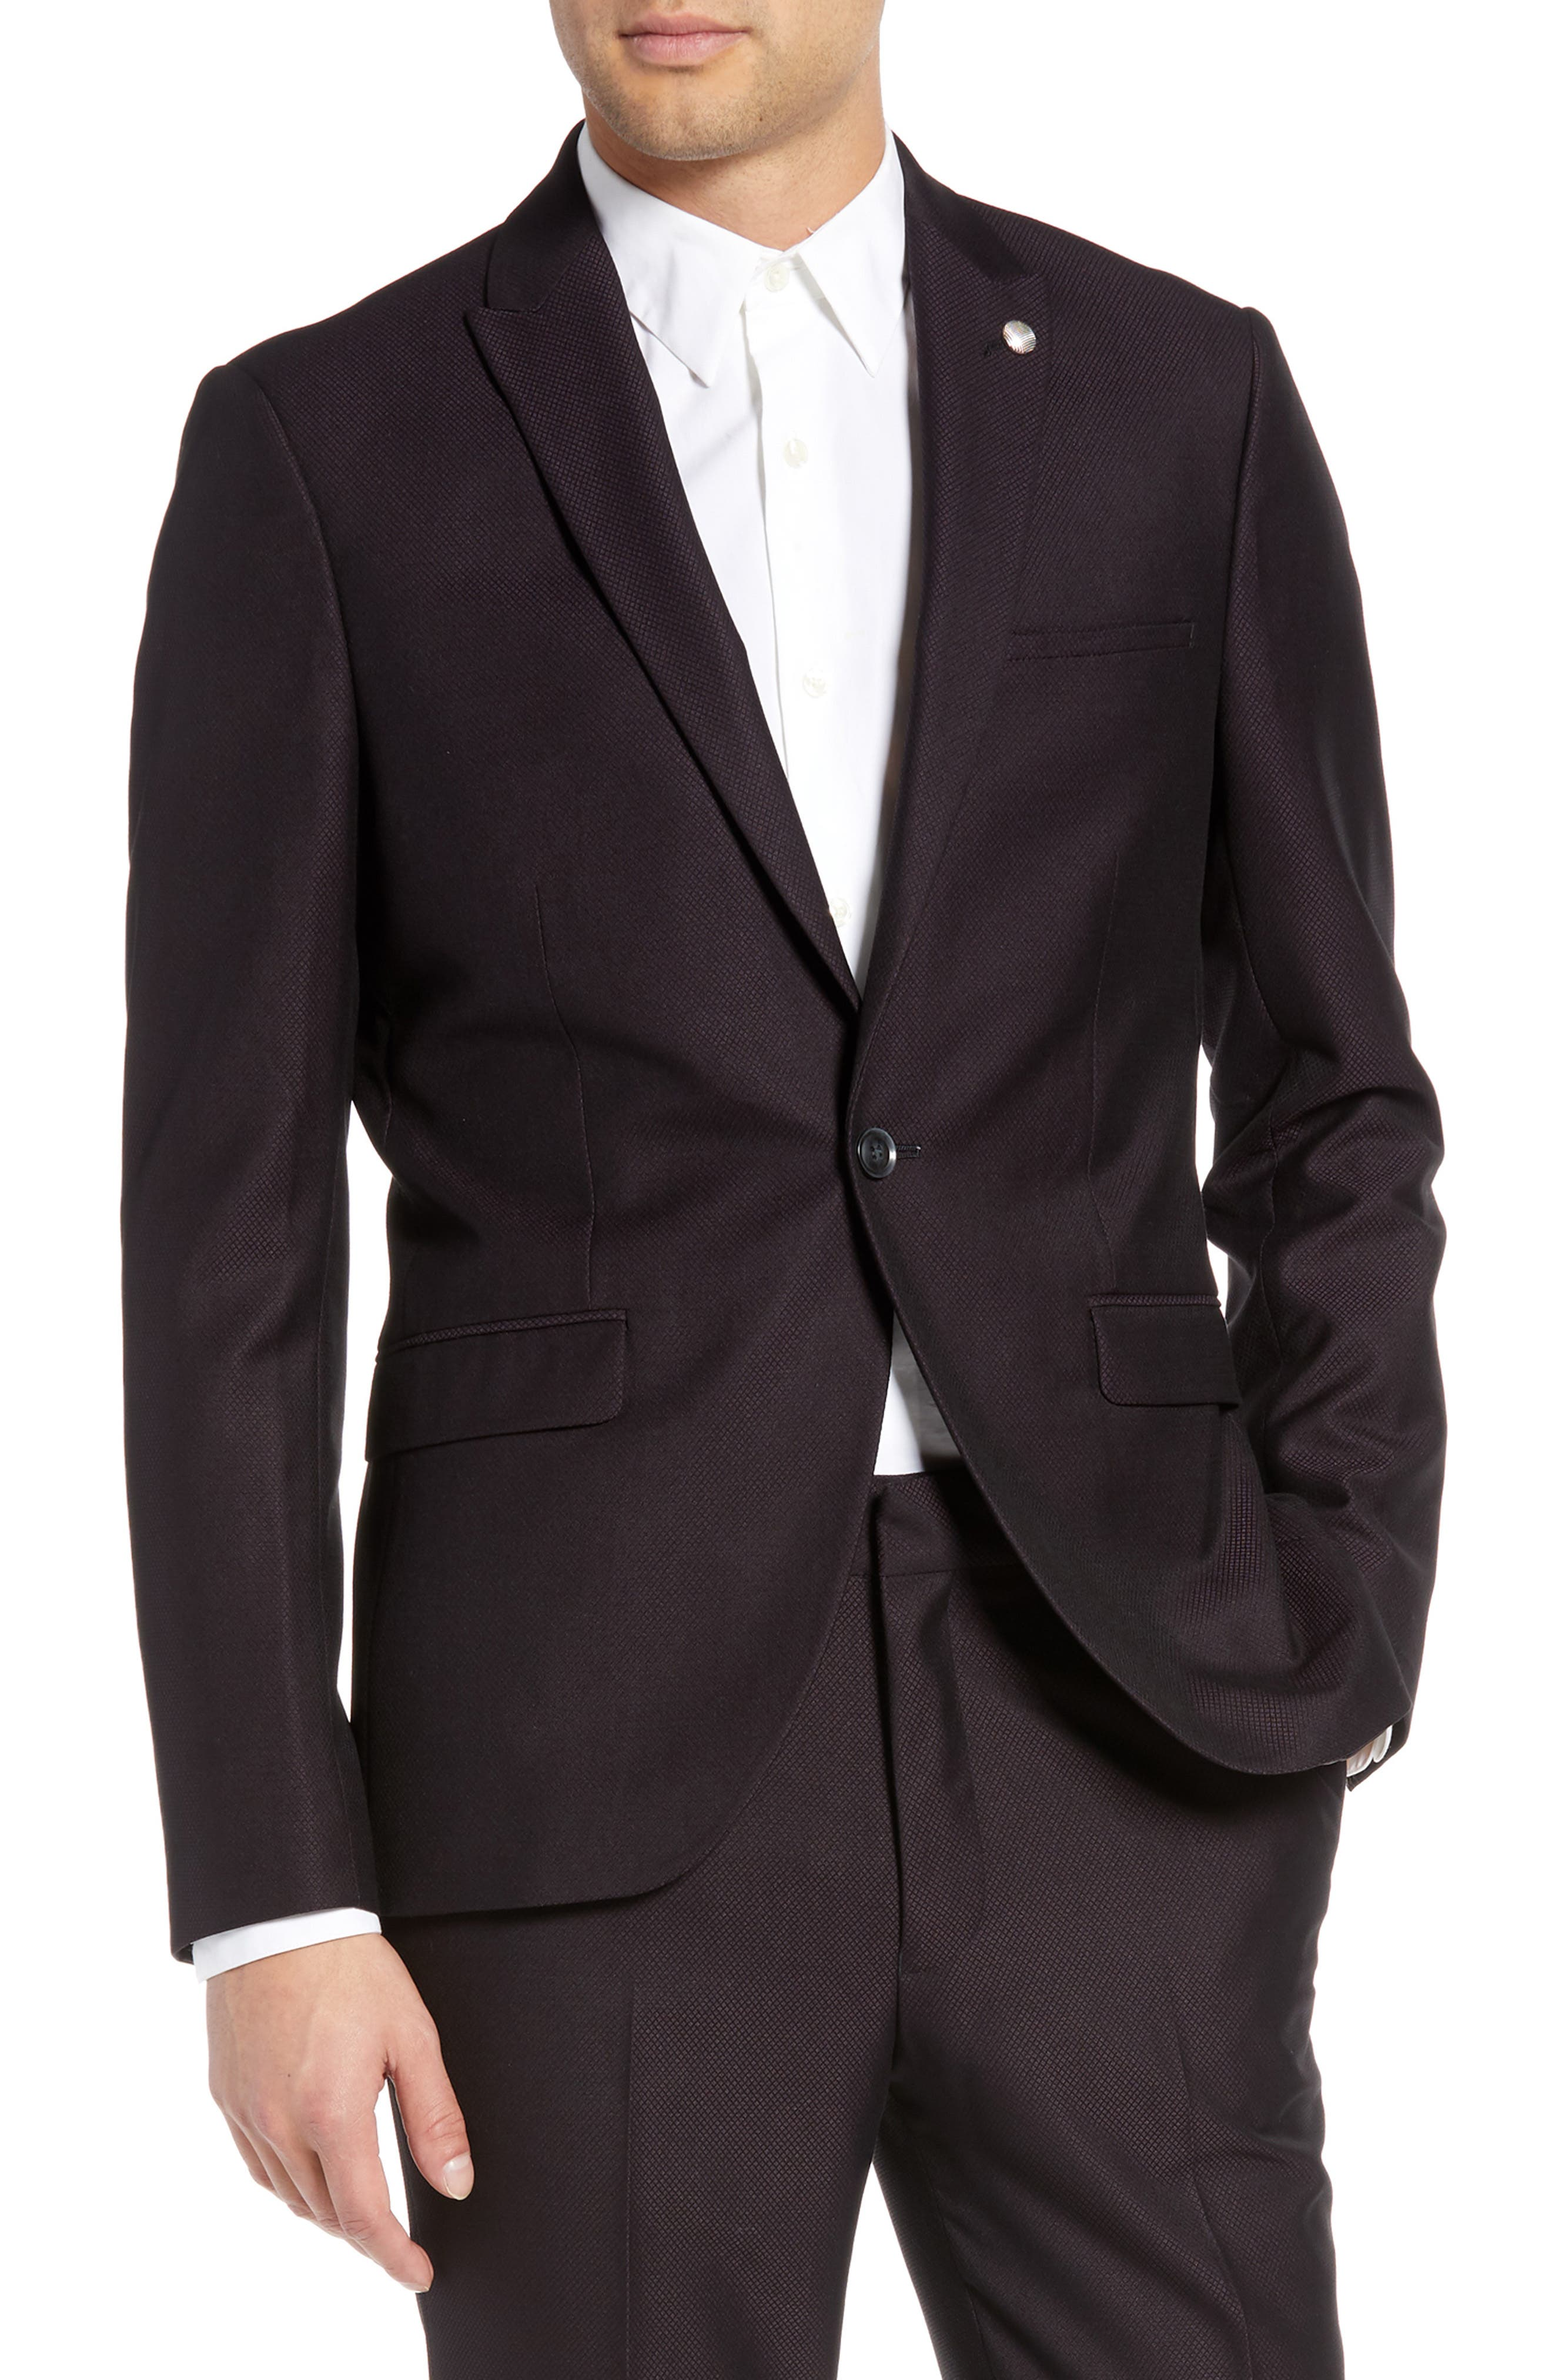 TOPMAN Bicester Skinny Fit Suit Jacket, Main, color, 930